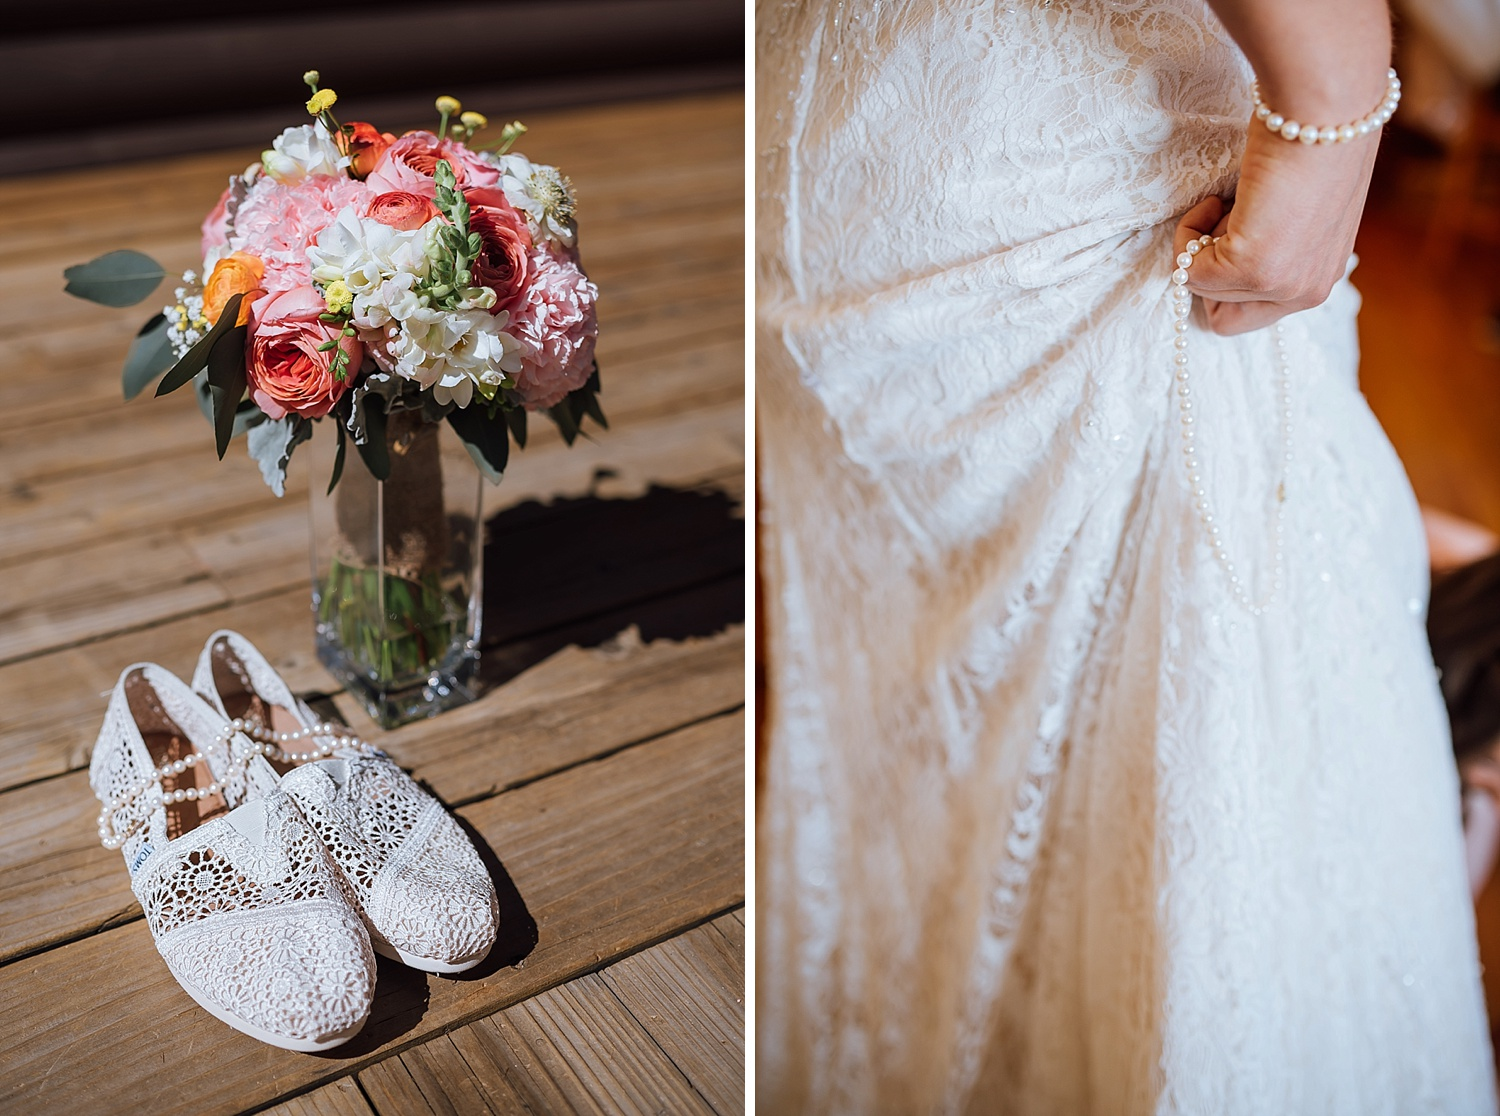 Pearls would lookso beautiful with my white lace TOMS and wedding dress!Photo by Maddie Mae Photography